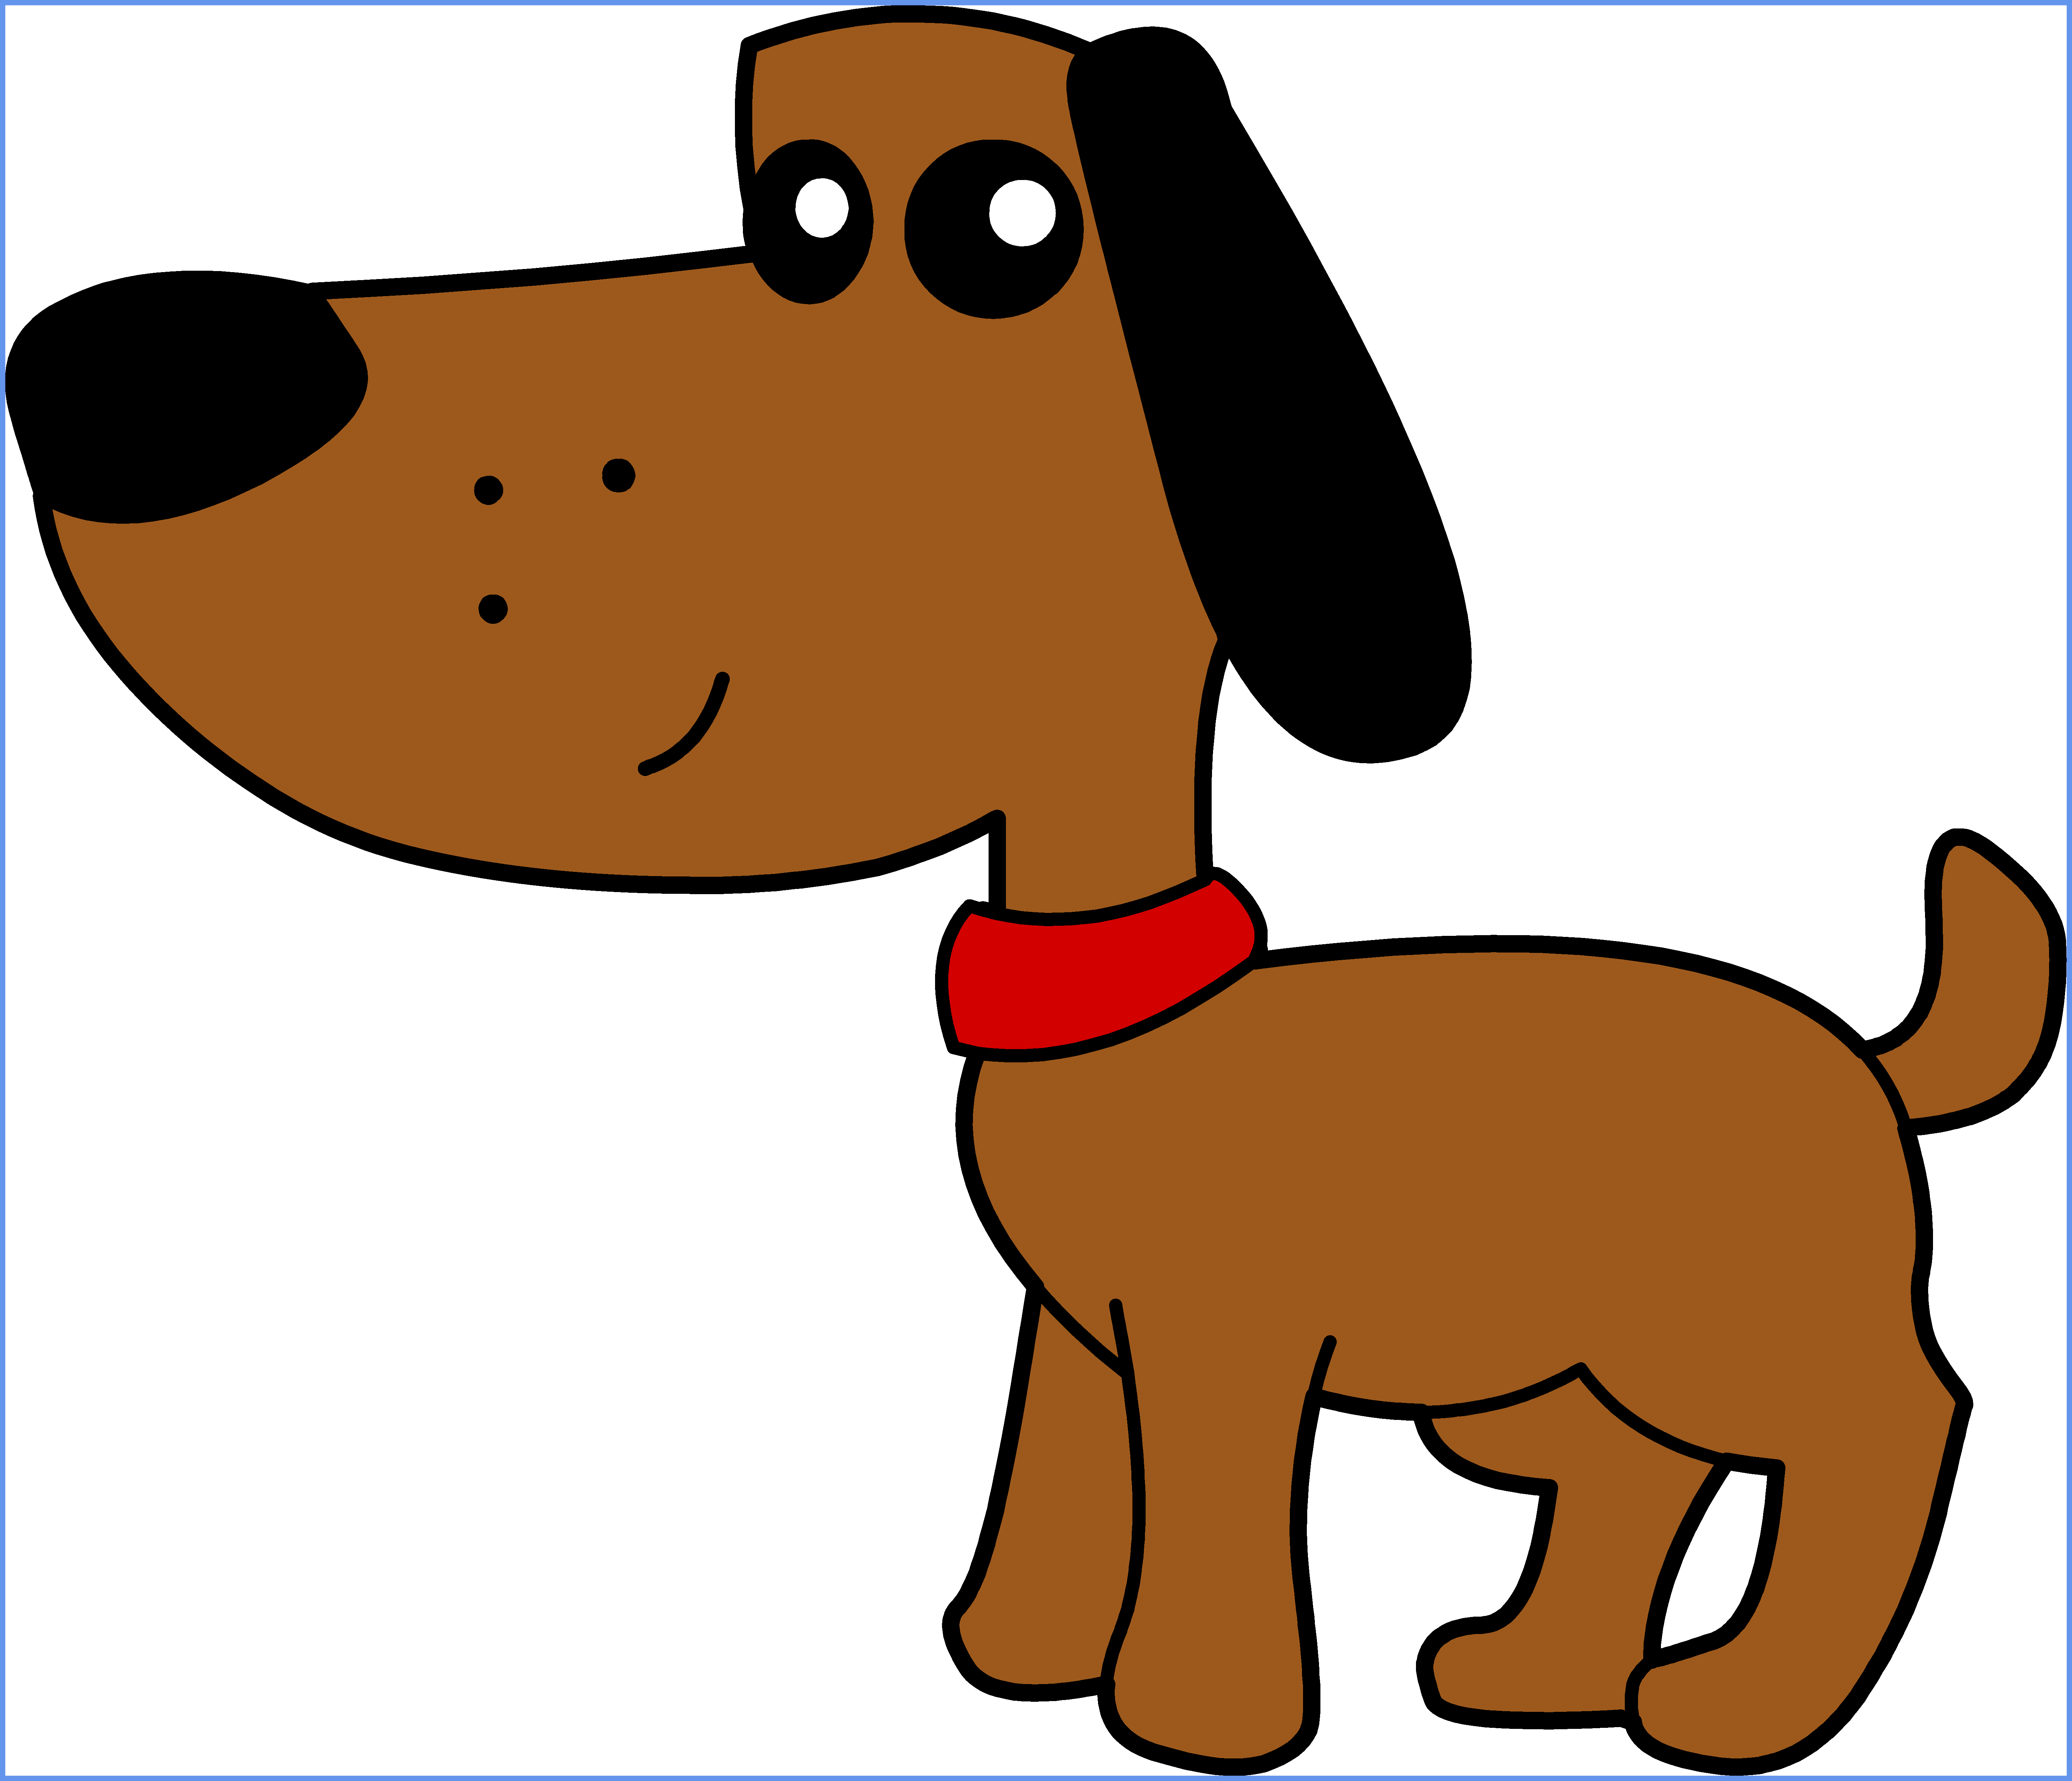 Cute dogs at getdrawings. Head clipart dachshund